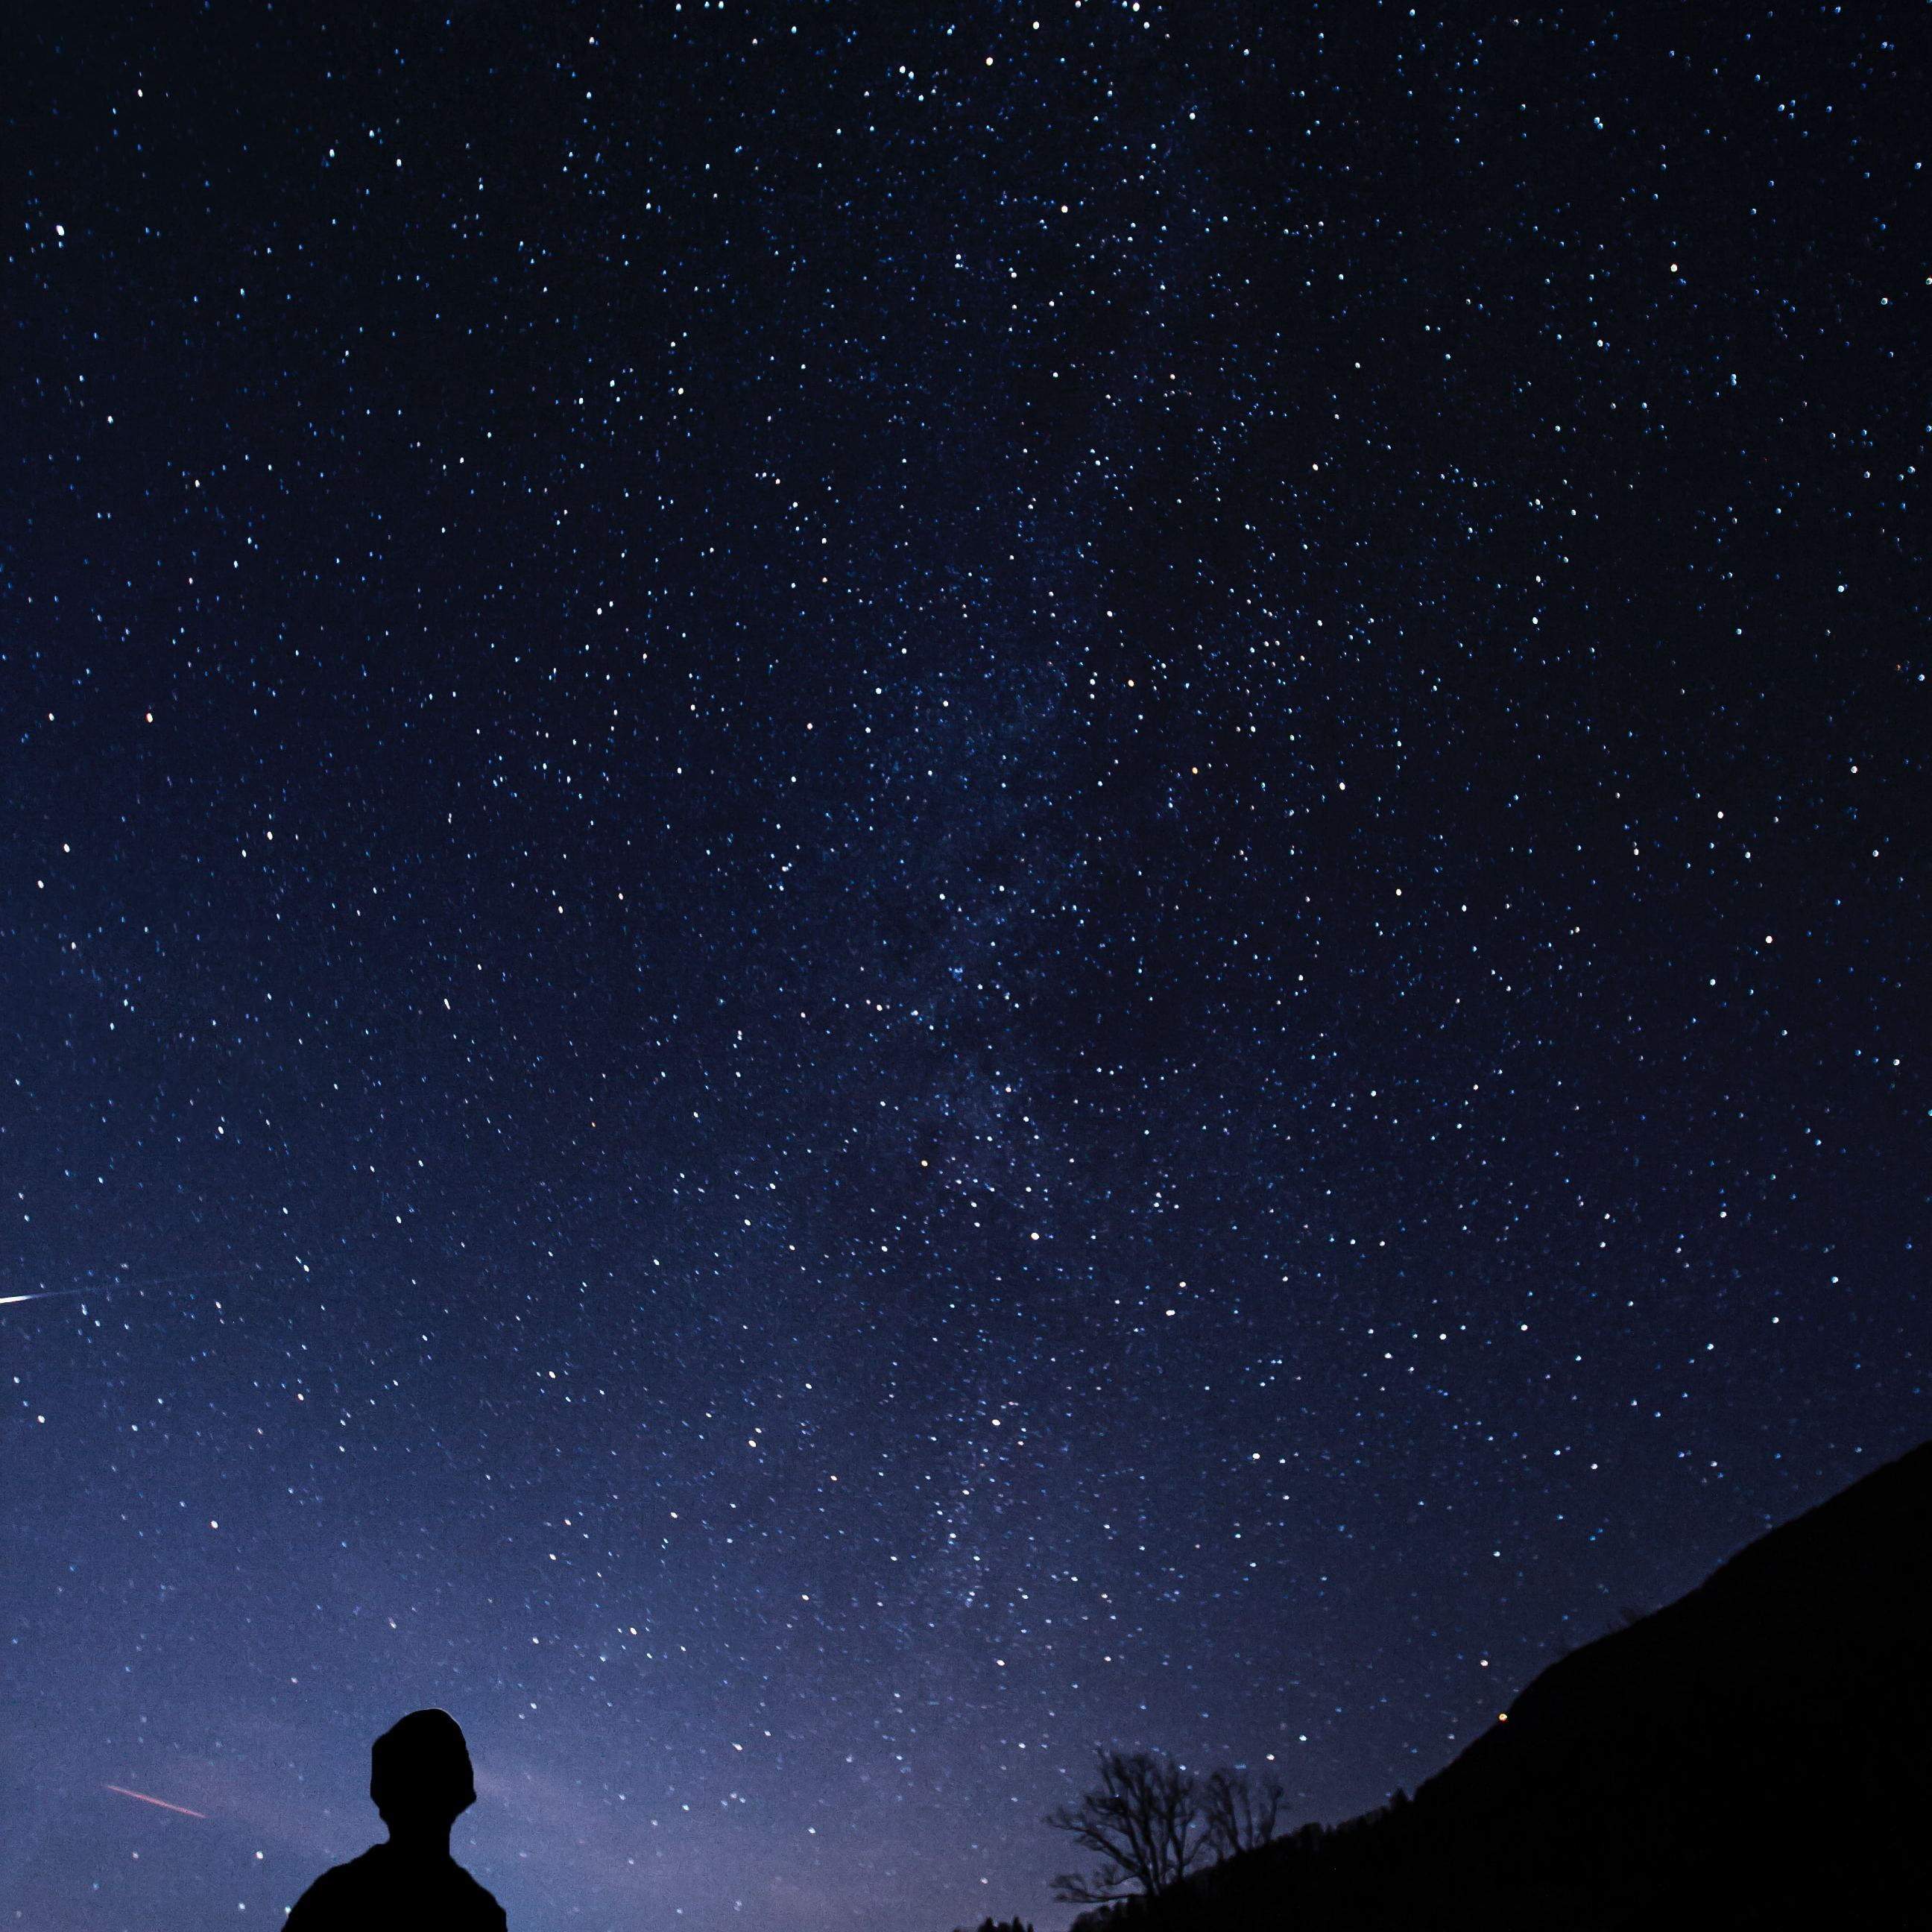 A man looking up into space. Photo: Klemen Vrankar/Unsplash.